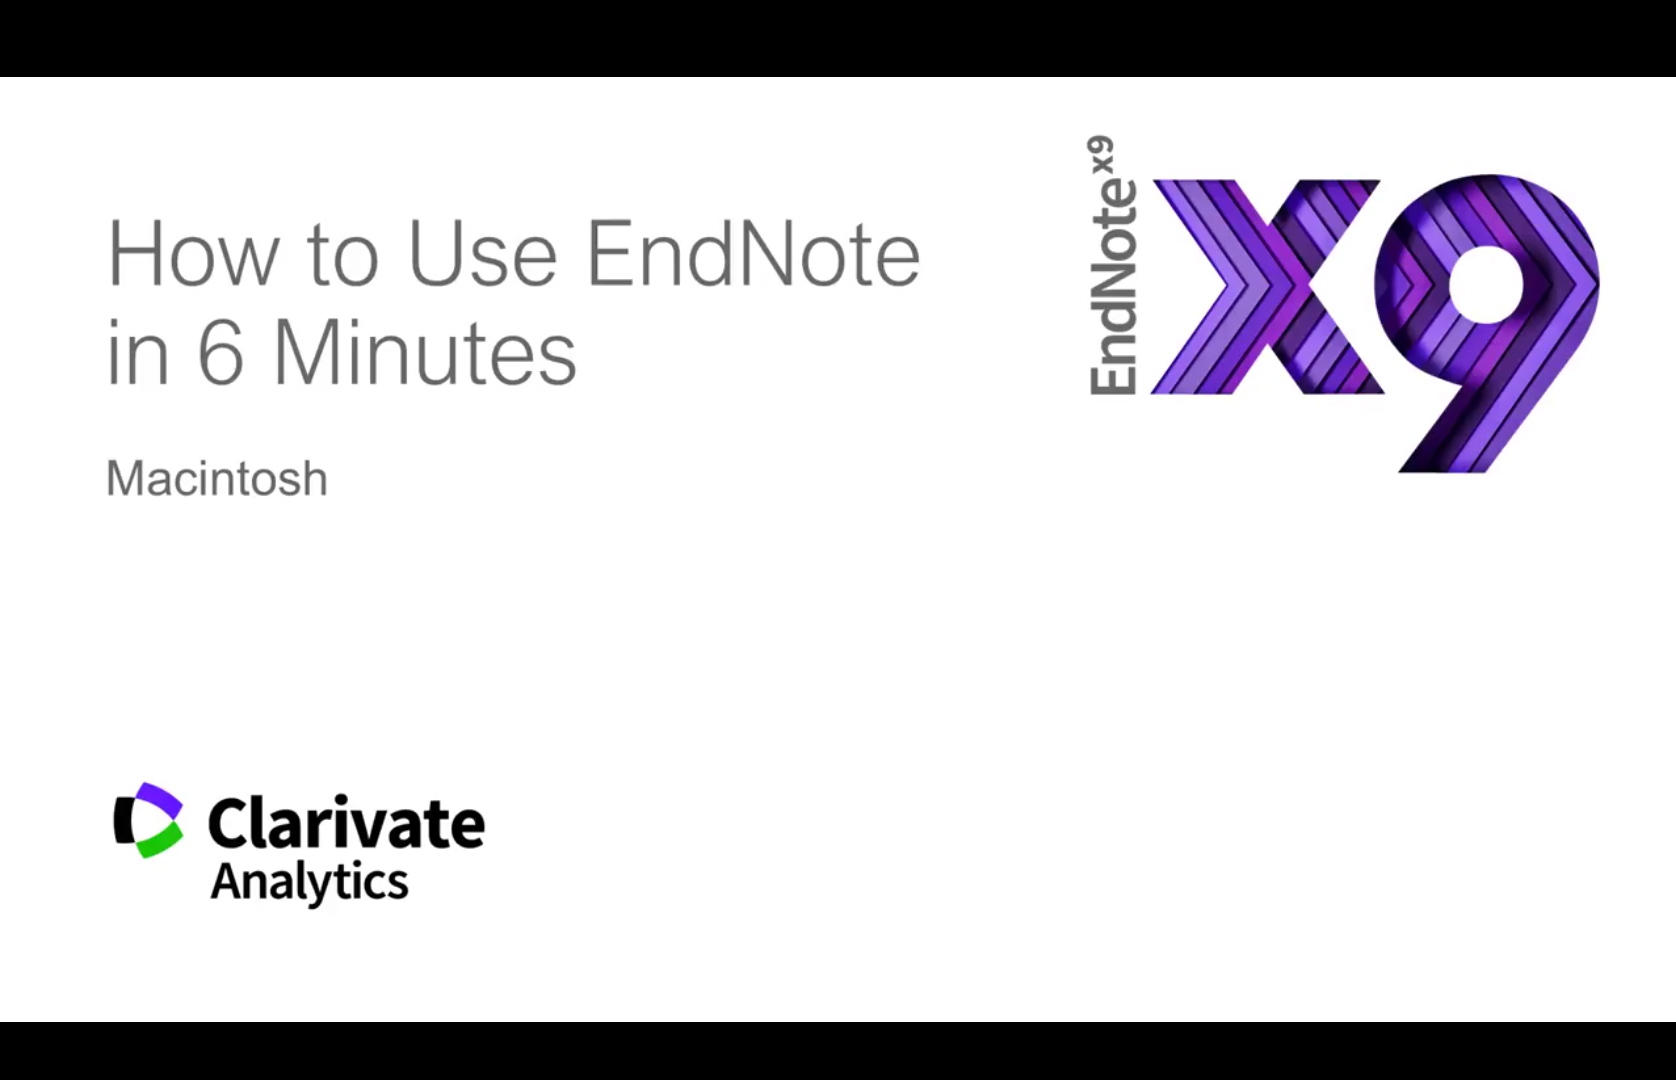 How to use EndNote in 6 minutes. (For Macintosh)